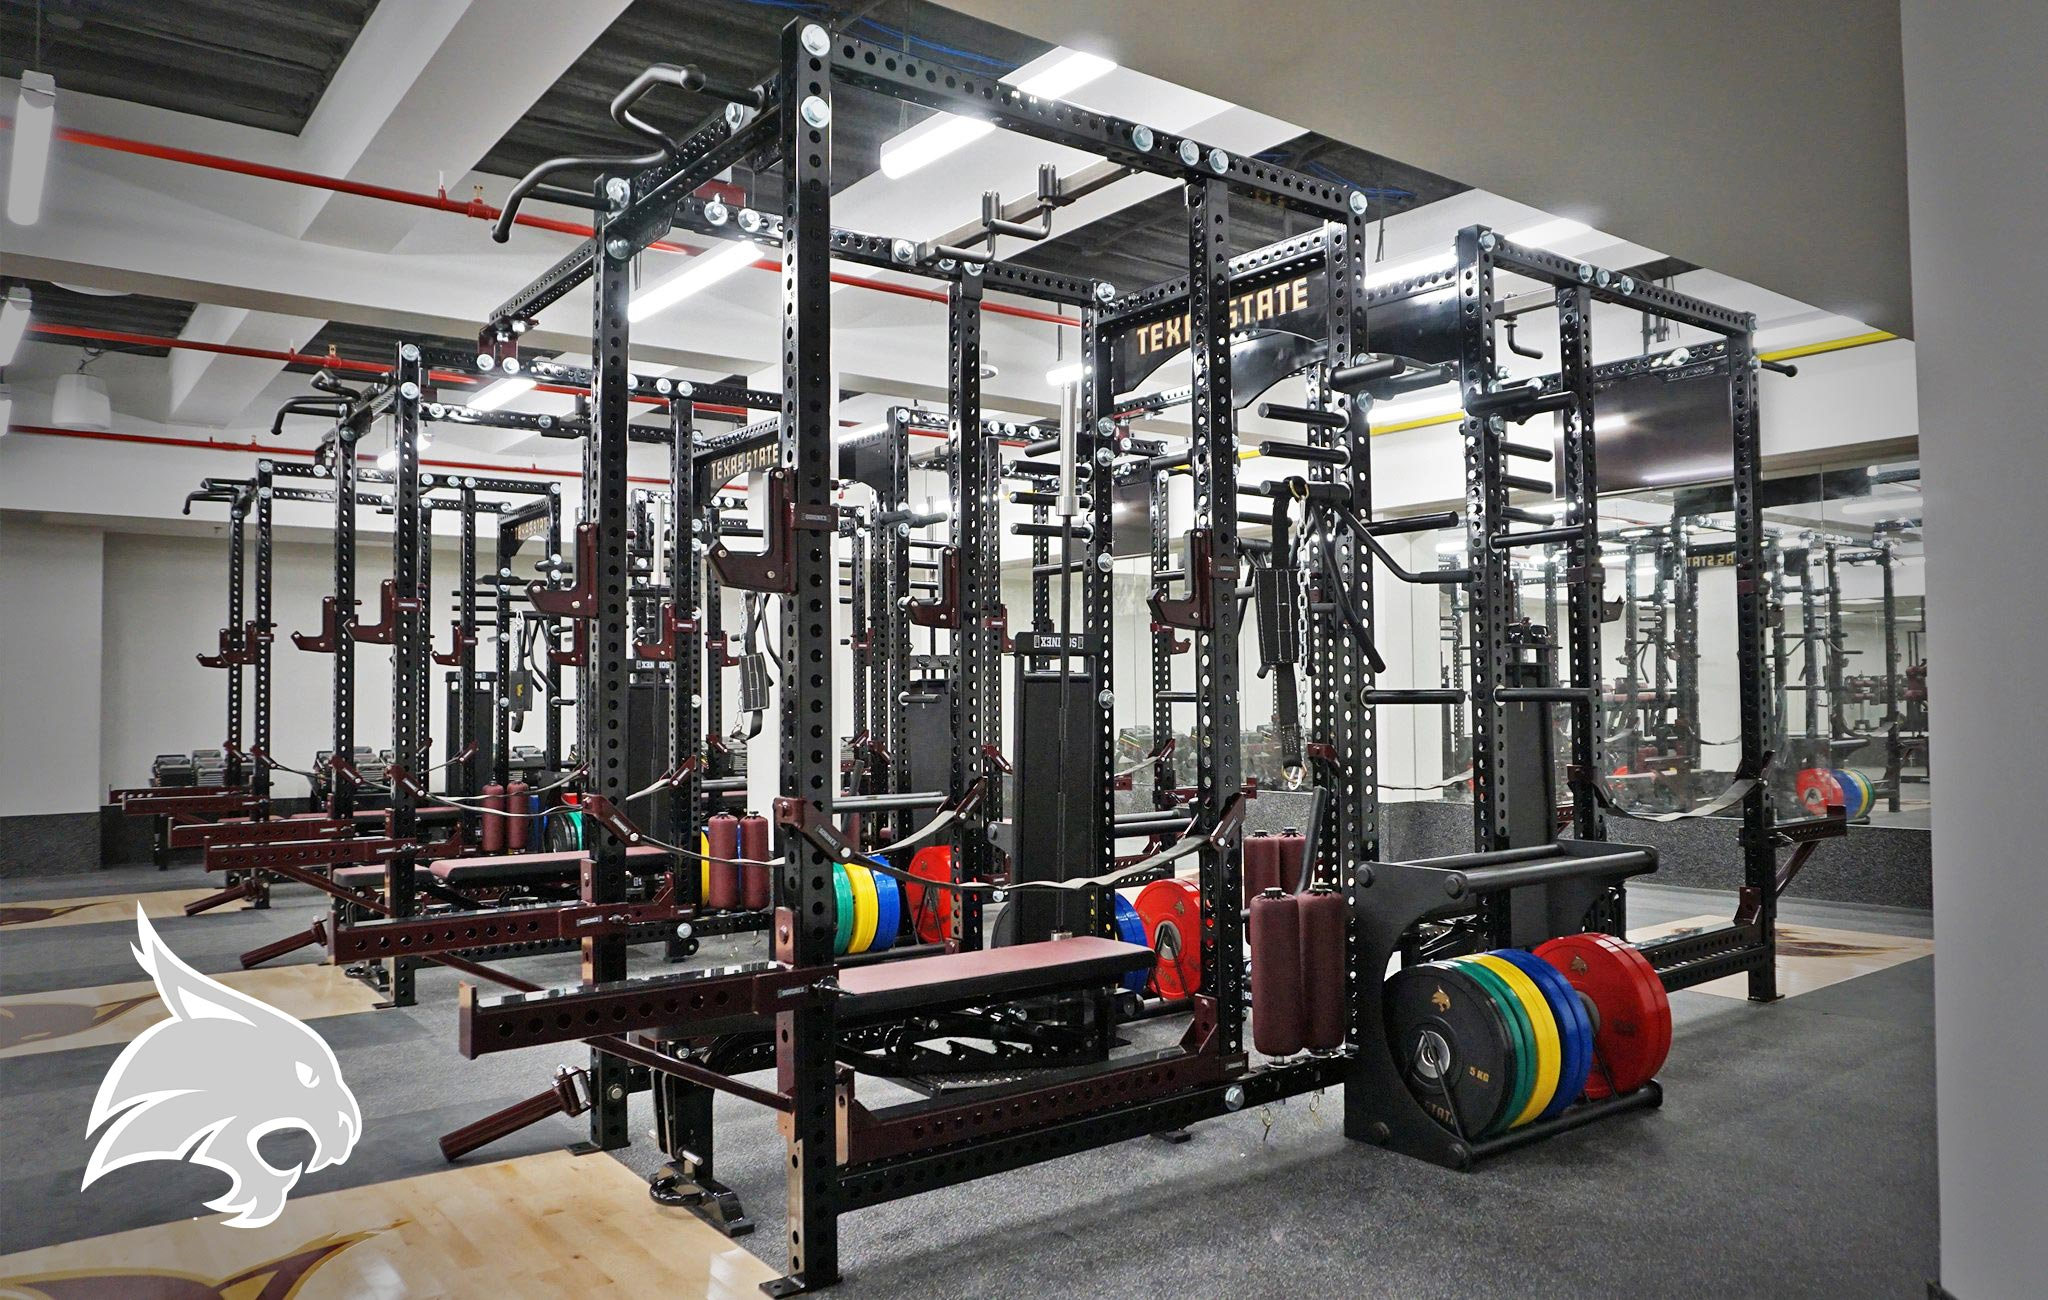 Texas State Sorinex strength and conditioning facility